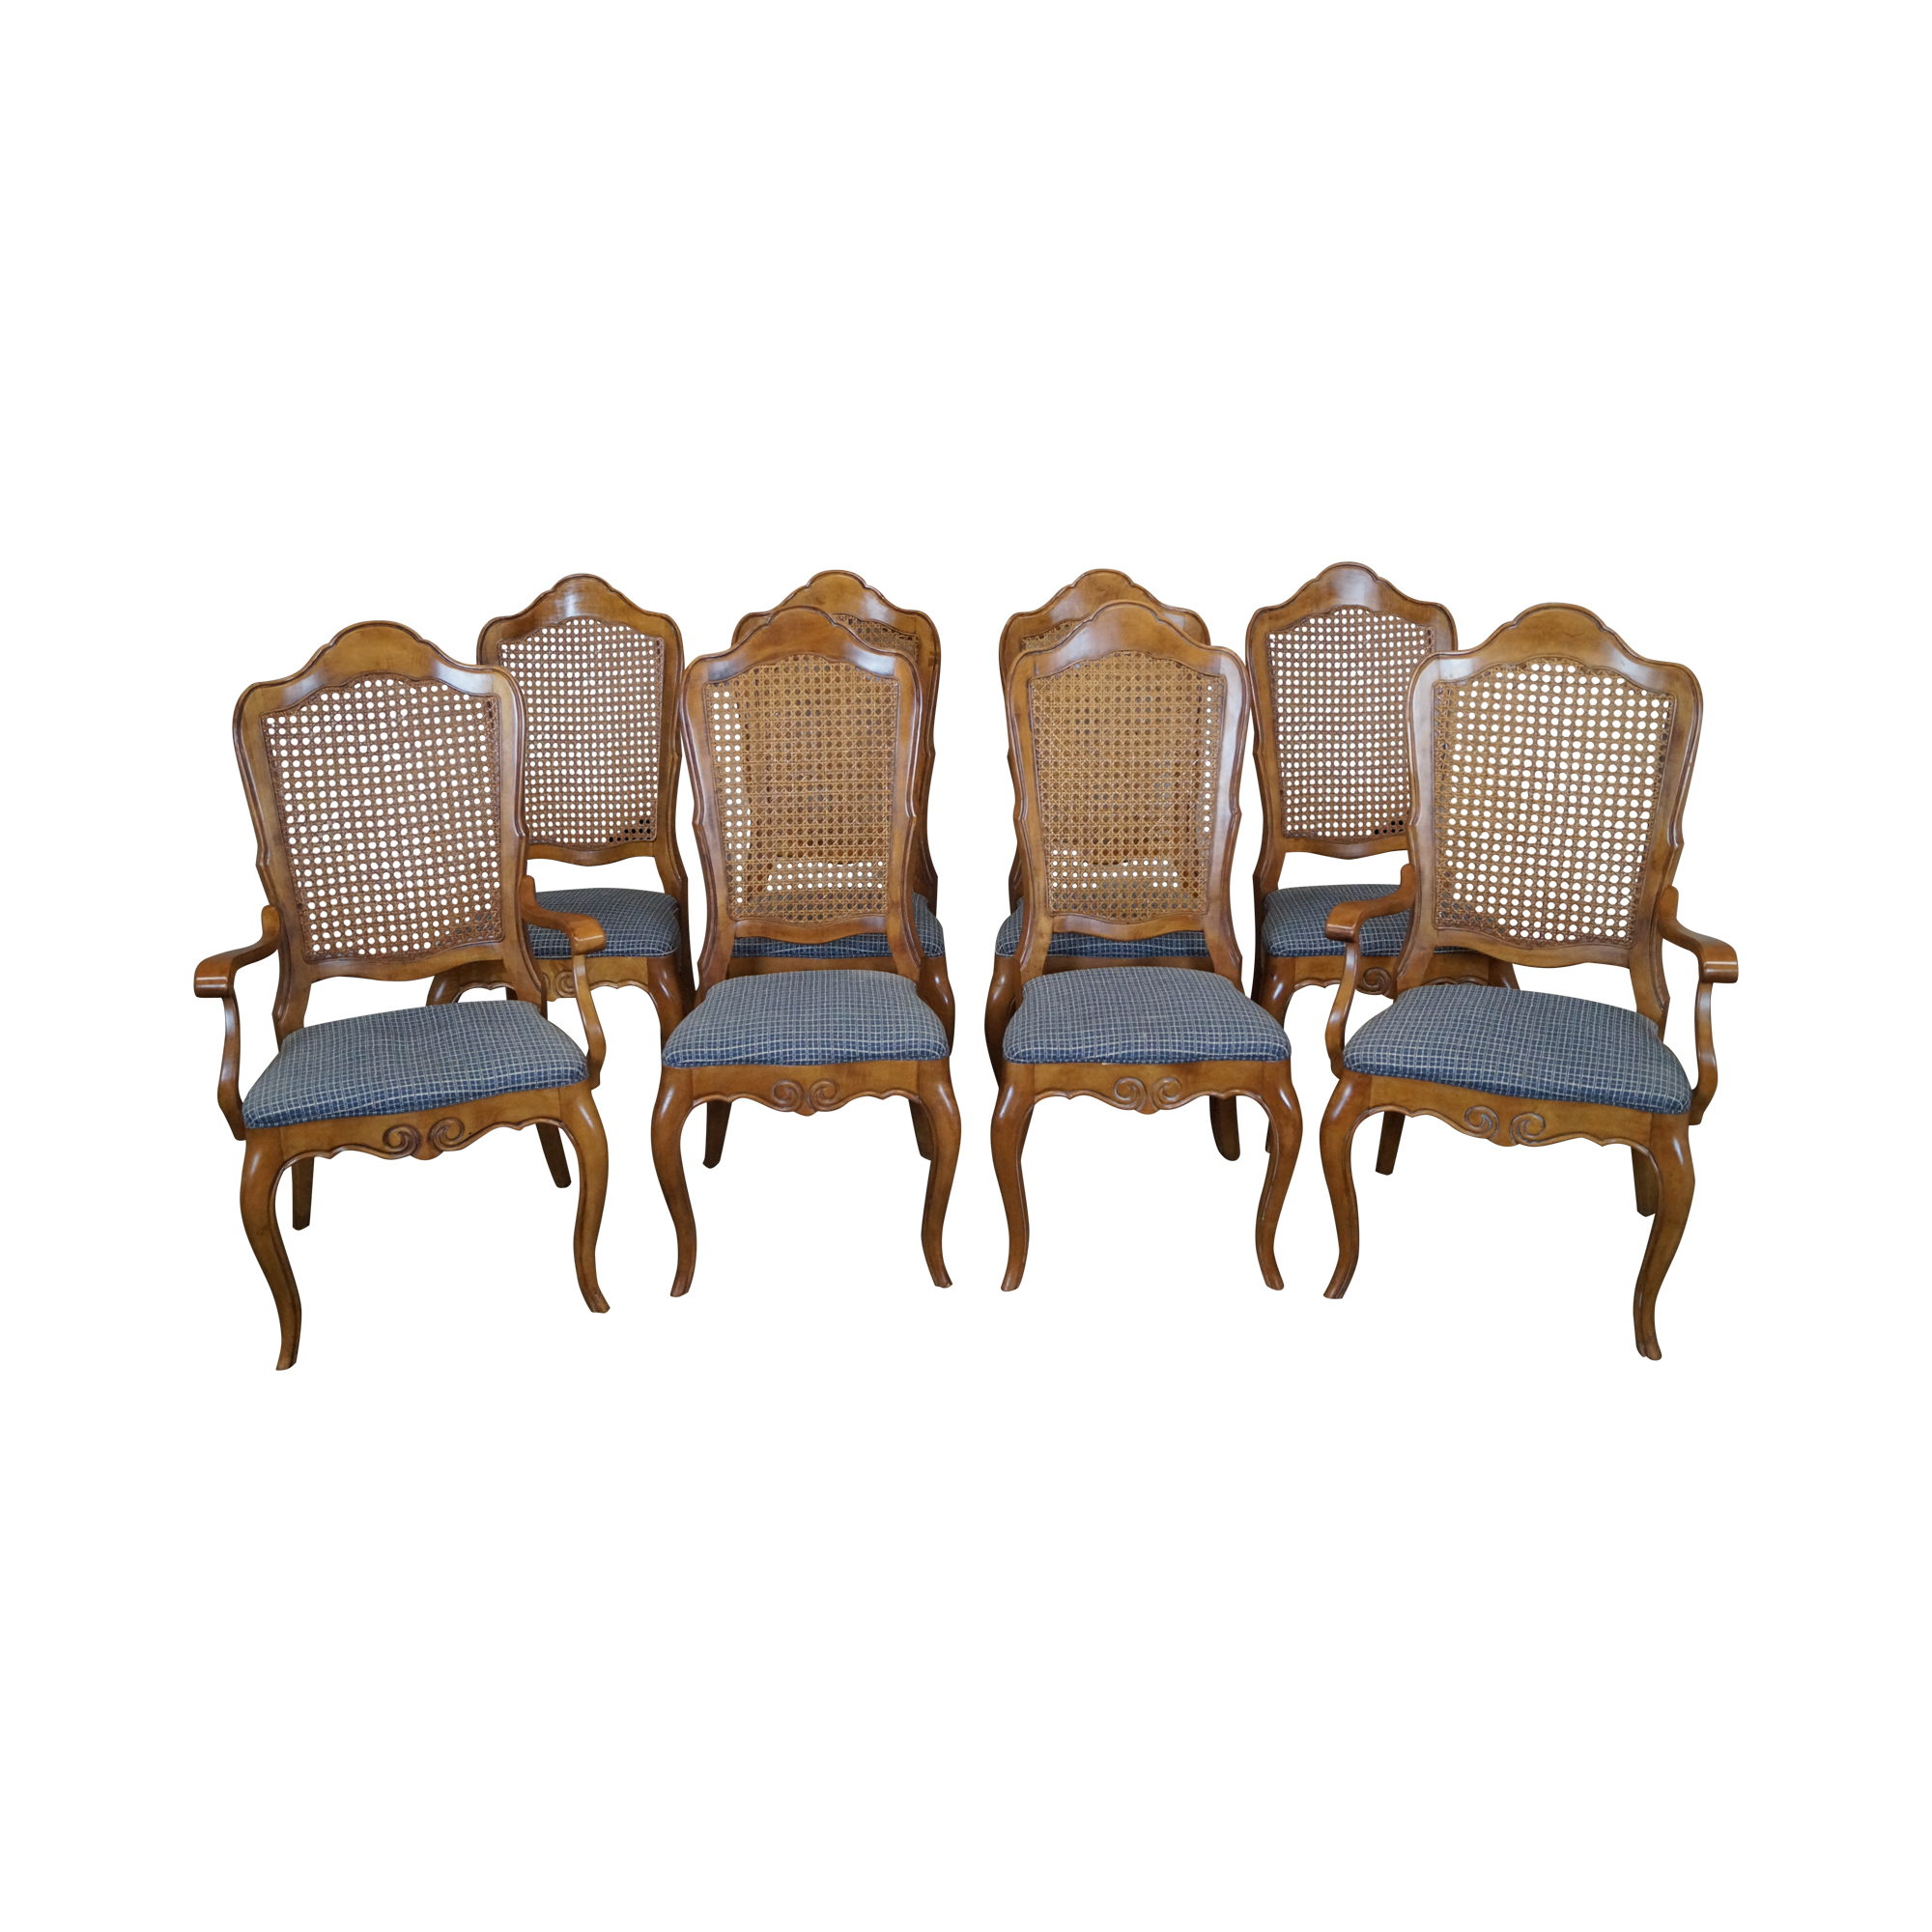 Ethan Allen Louis XV Cane Back Dining Chairs 8